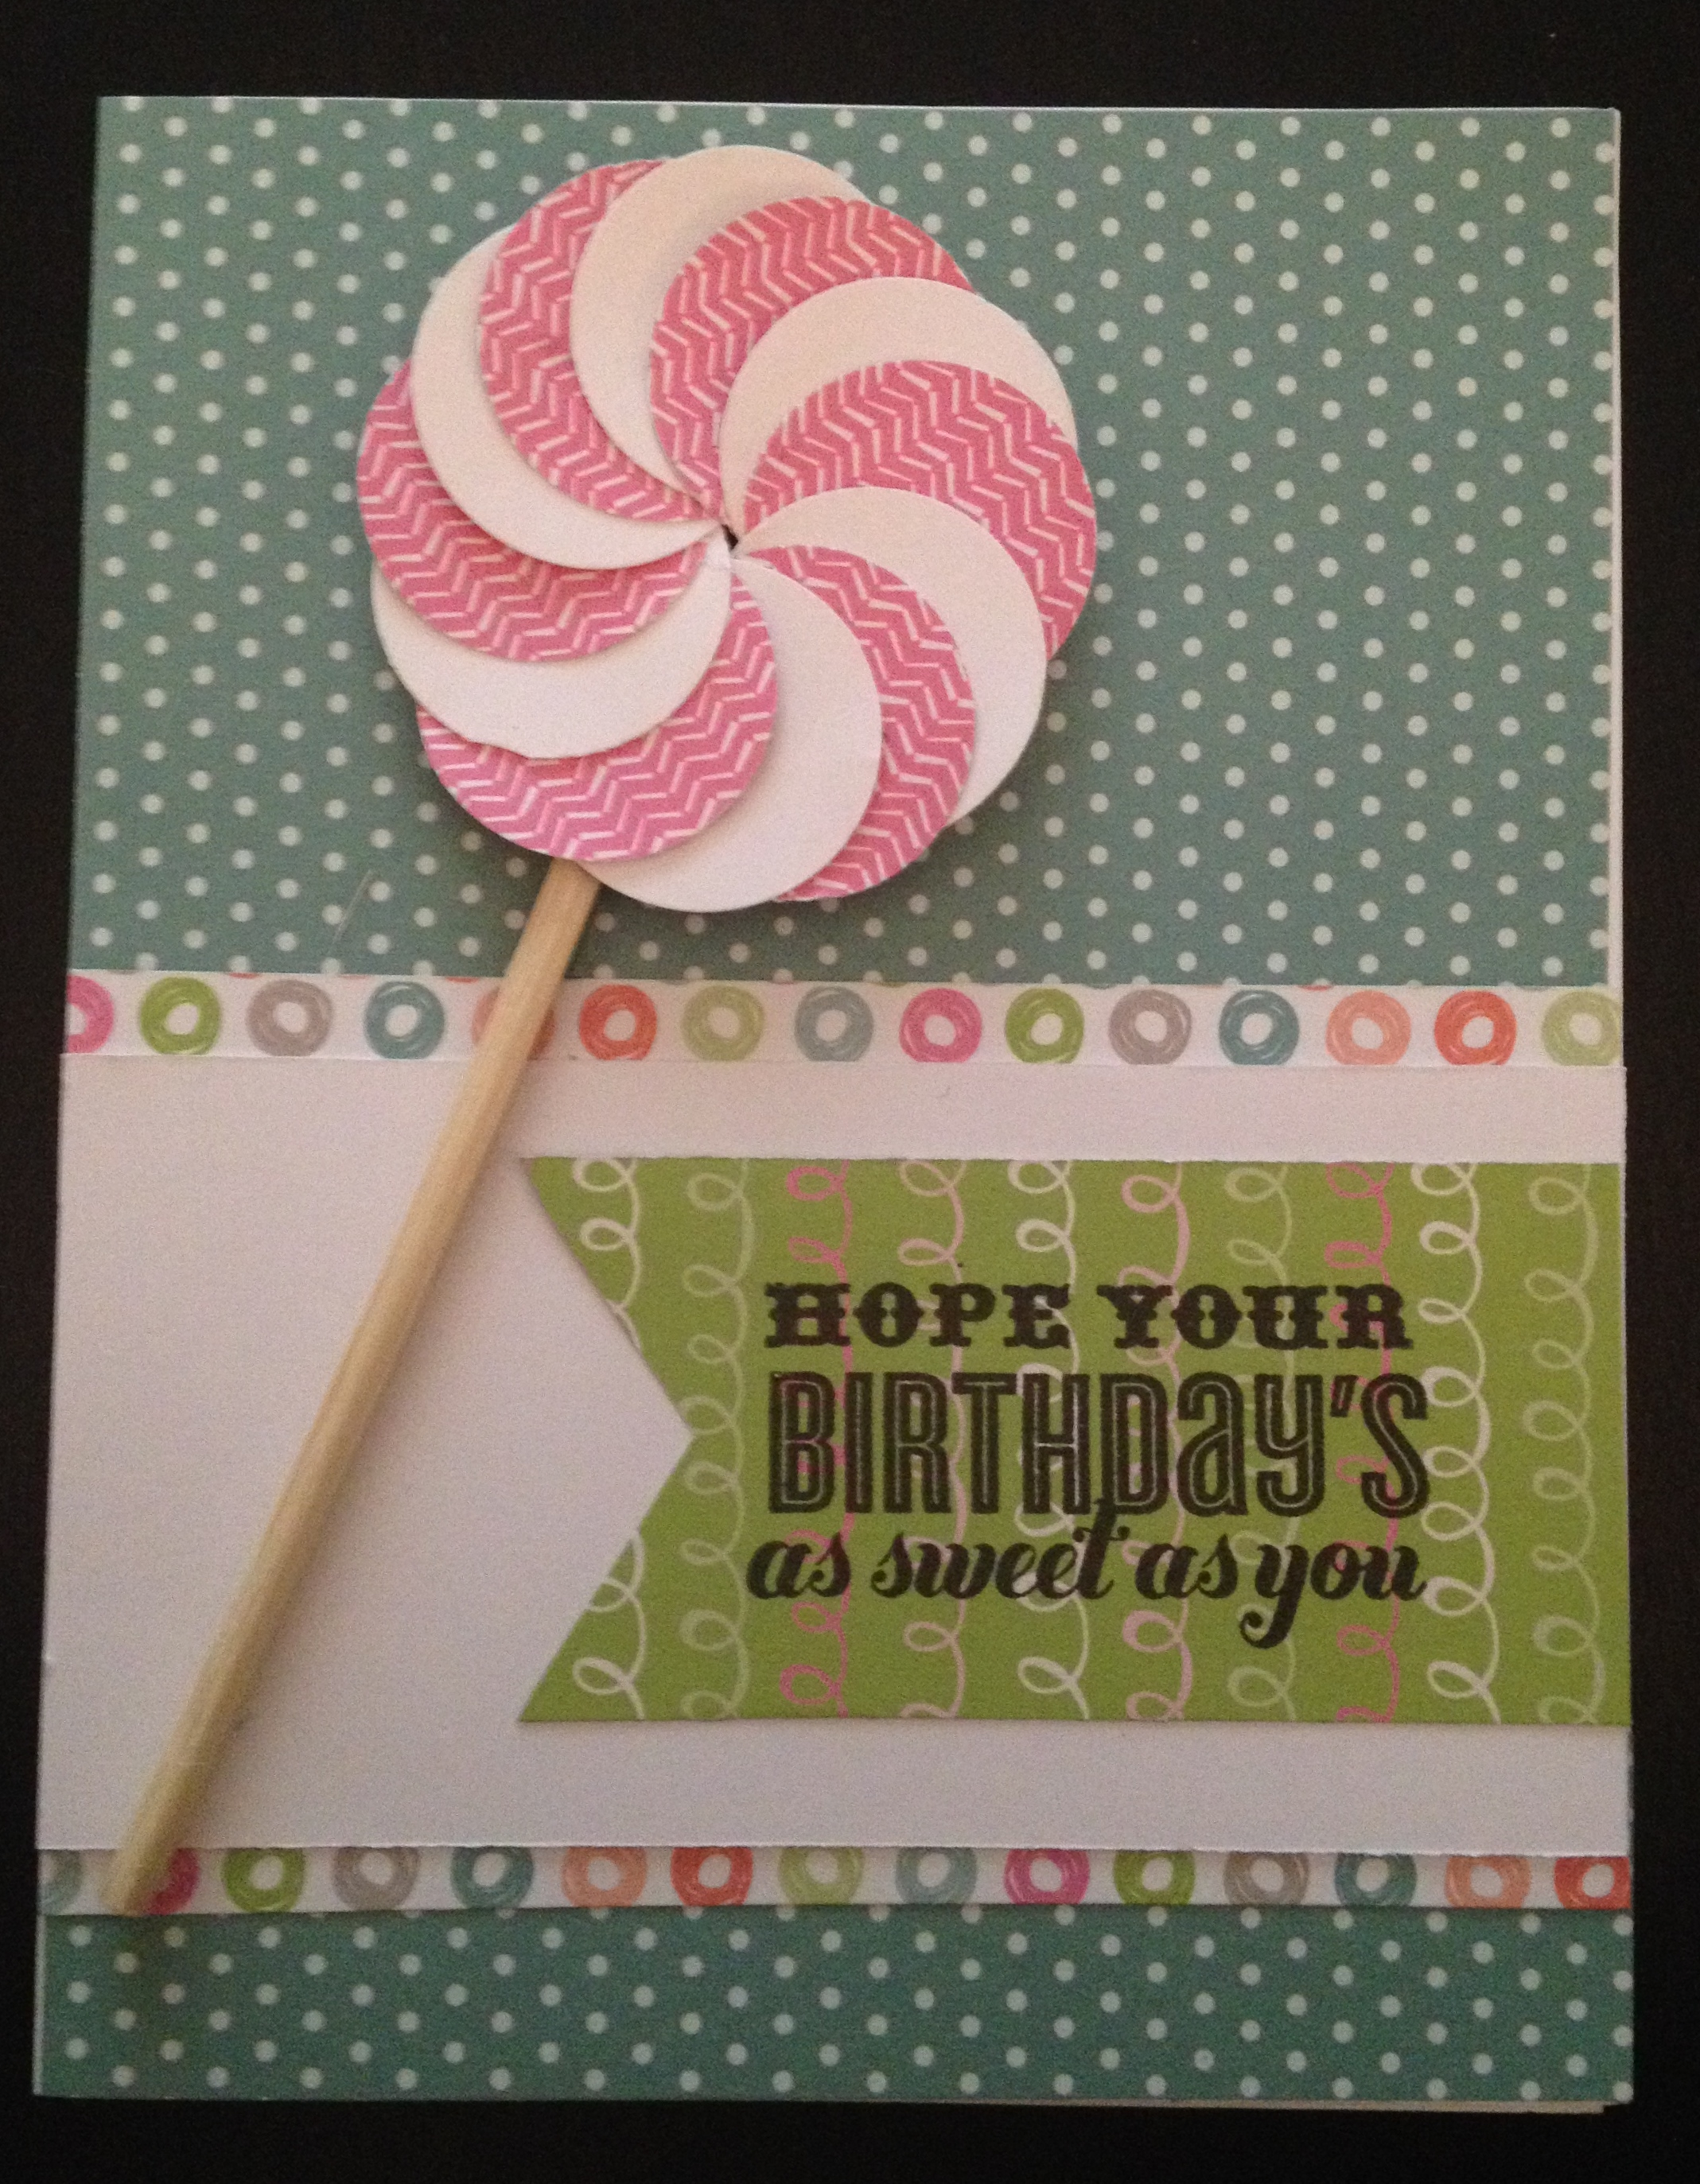 Lollipop sweet birthday card scrapedia sweet as you lollypop birthday card lollydoodle bookmarktalkfo Choice Image